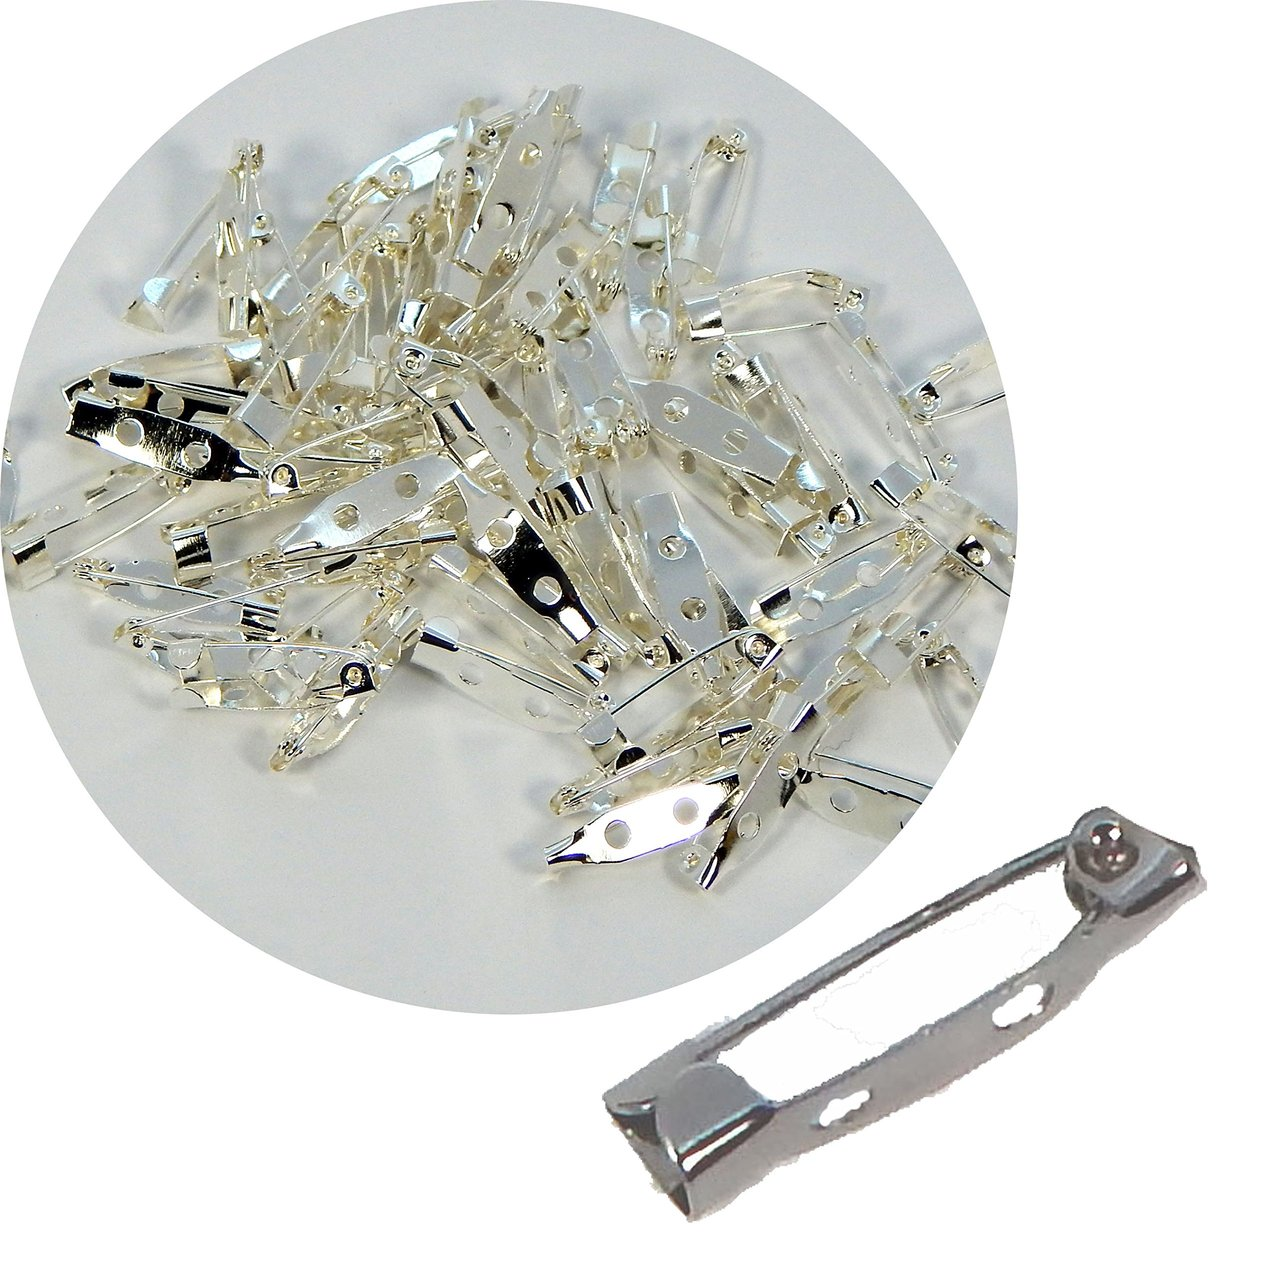 SILVER 2 PACKAGES BAR STYLE PIN BACKS WITH SAFETY CATCH 3//4/""